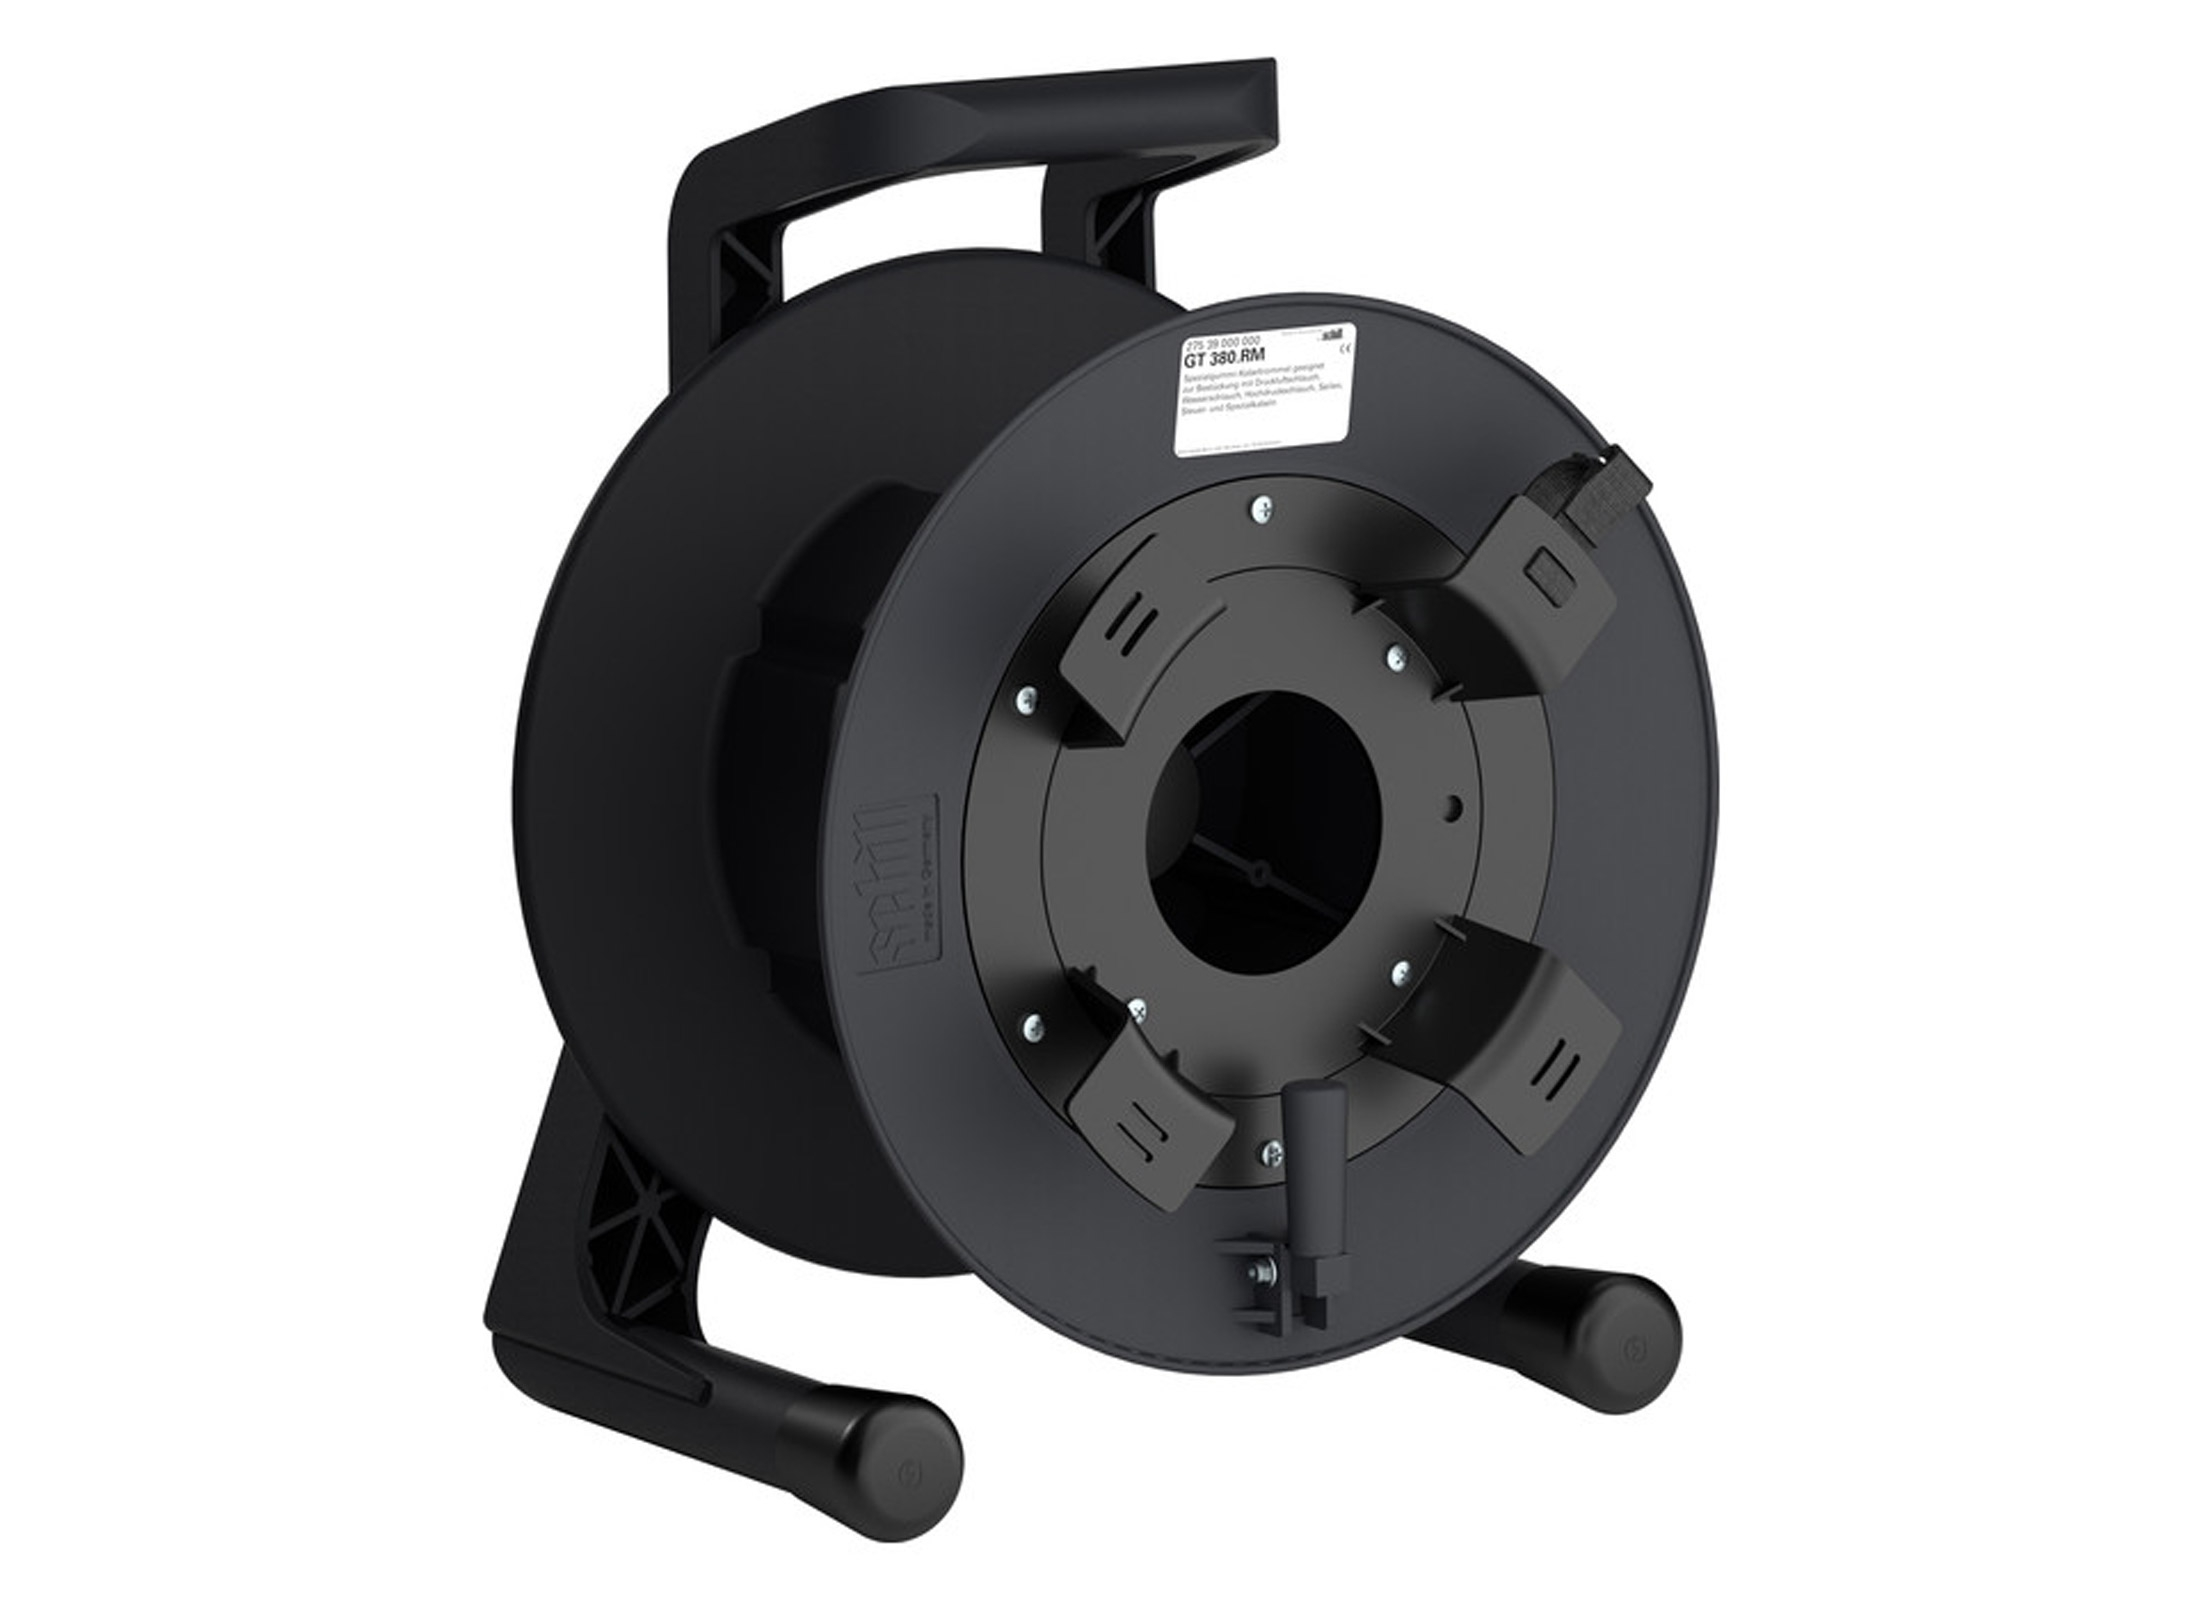 Ventilator Ohne Rotor Schill Gt 380 Rm Rubber Cable Reel Black With Outside Spool